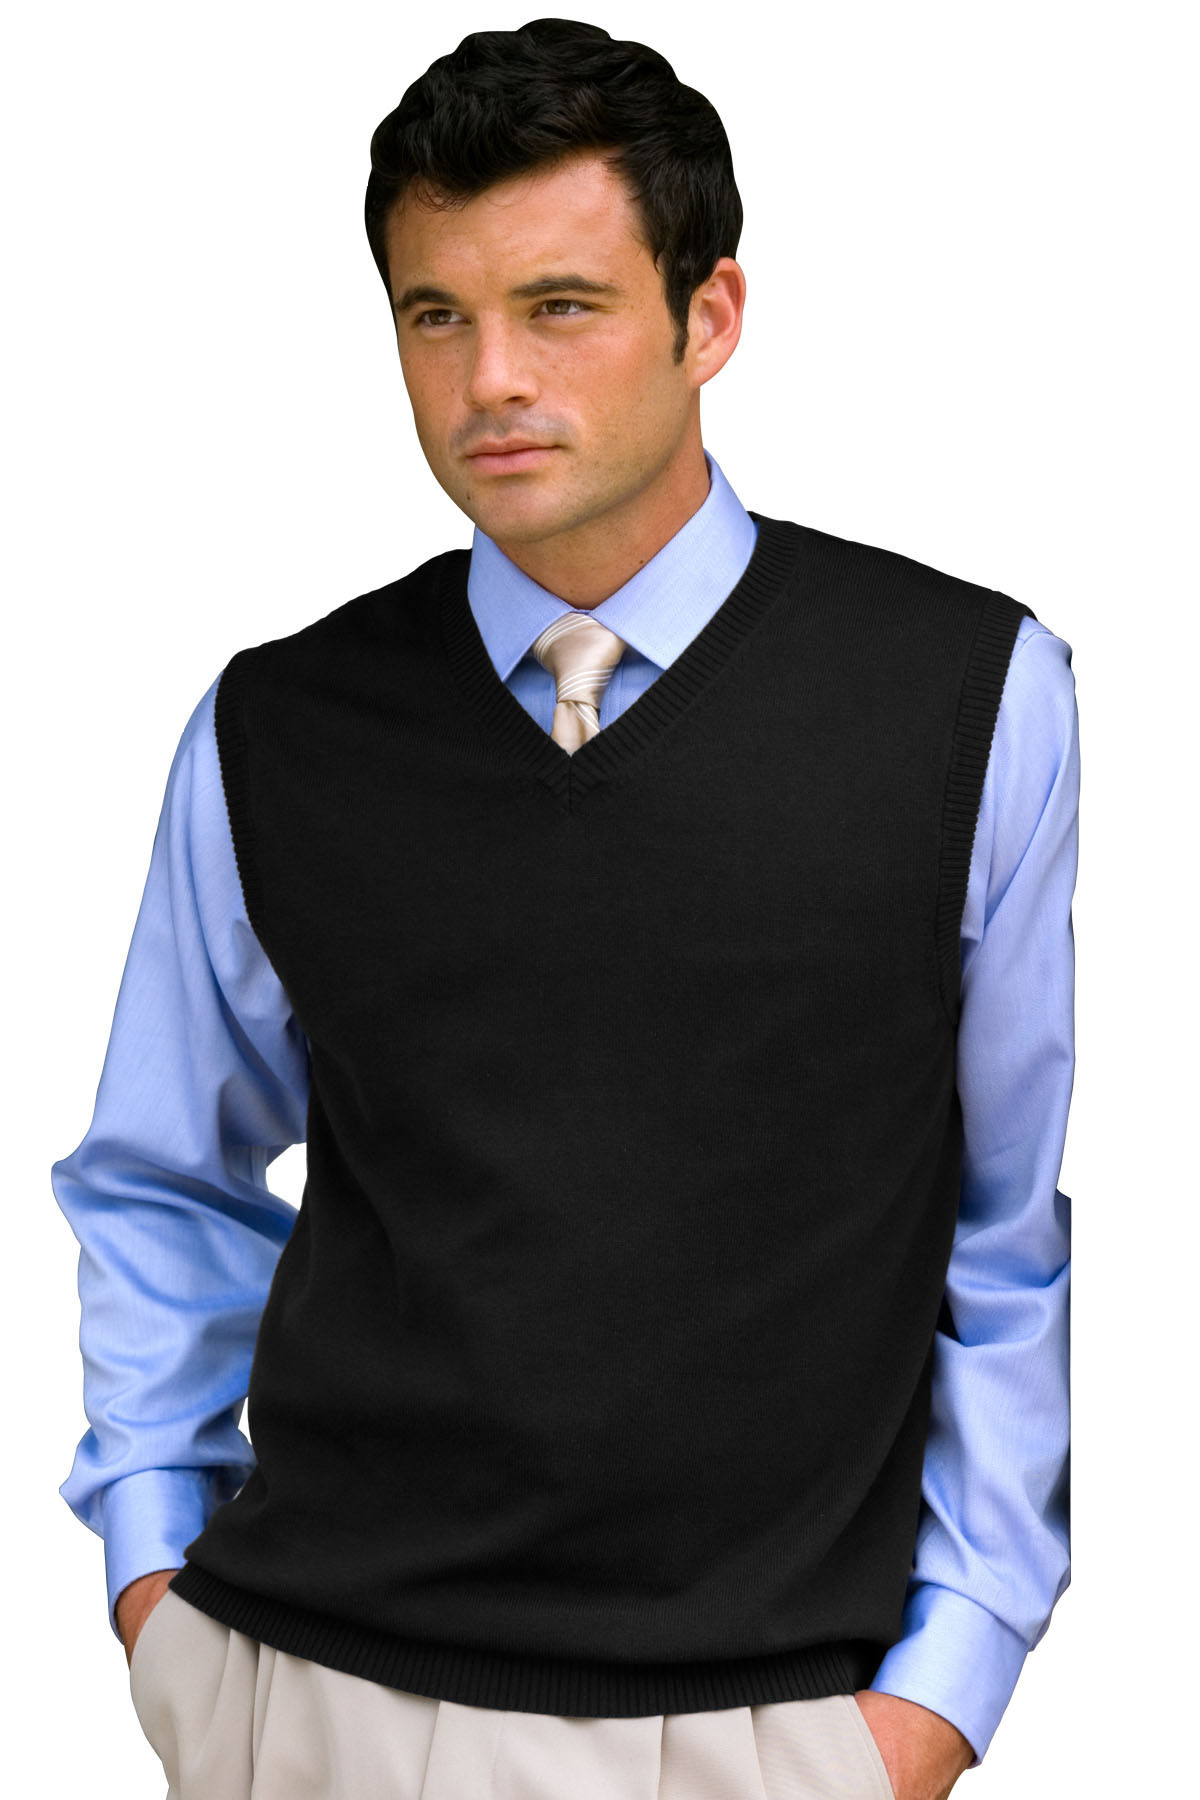 Vantage 5755 - Milano Knit Sweater Vest $24.84 - Men's Tanks